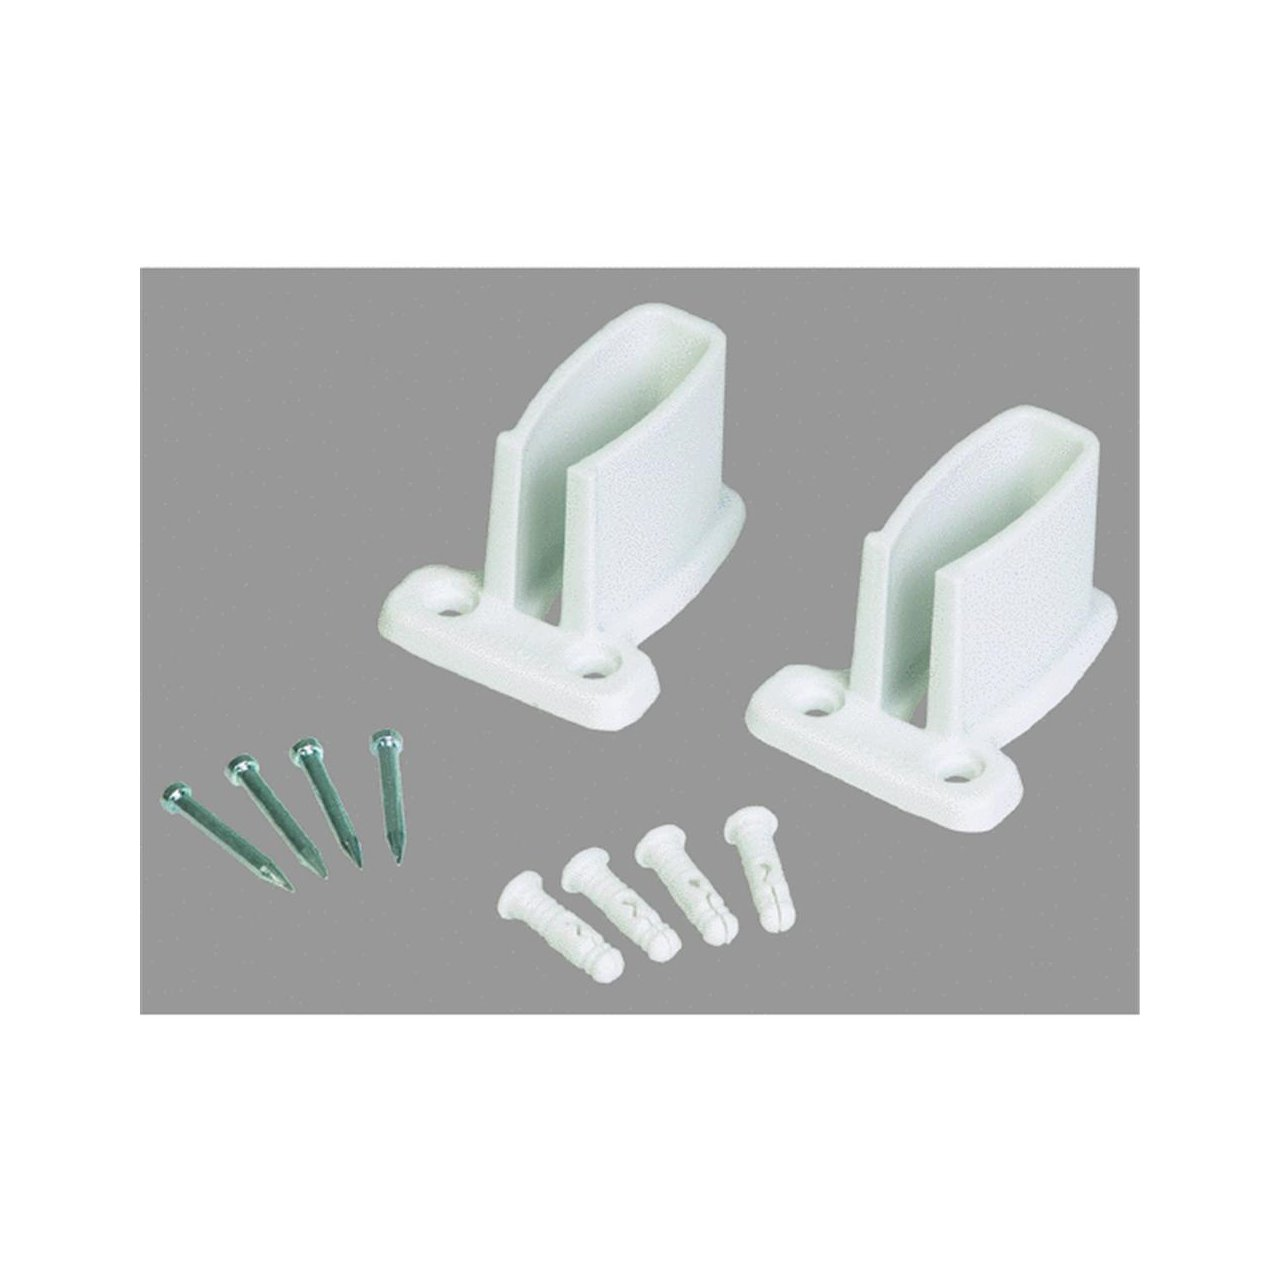 Amazon.com: Organized Living 1464 6621 11 Sidewall Brackets With Trilock  Anchors 2 Count: Home Improvement